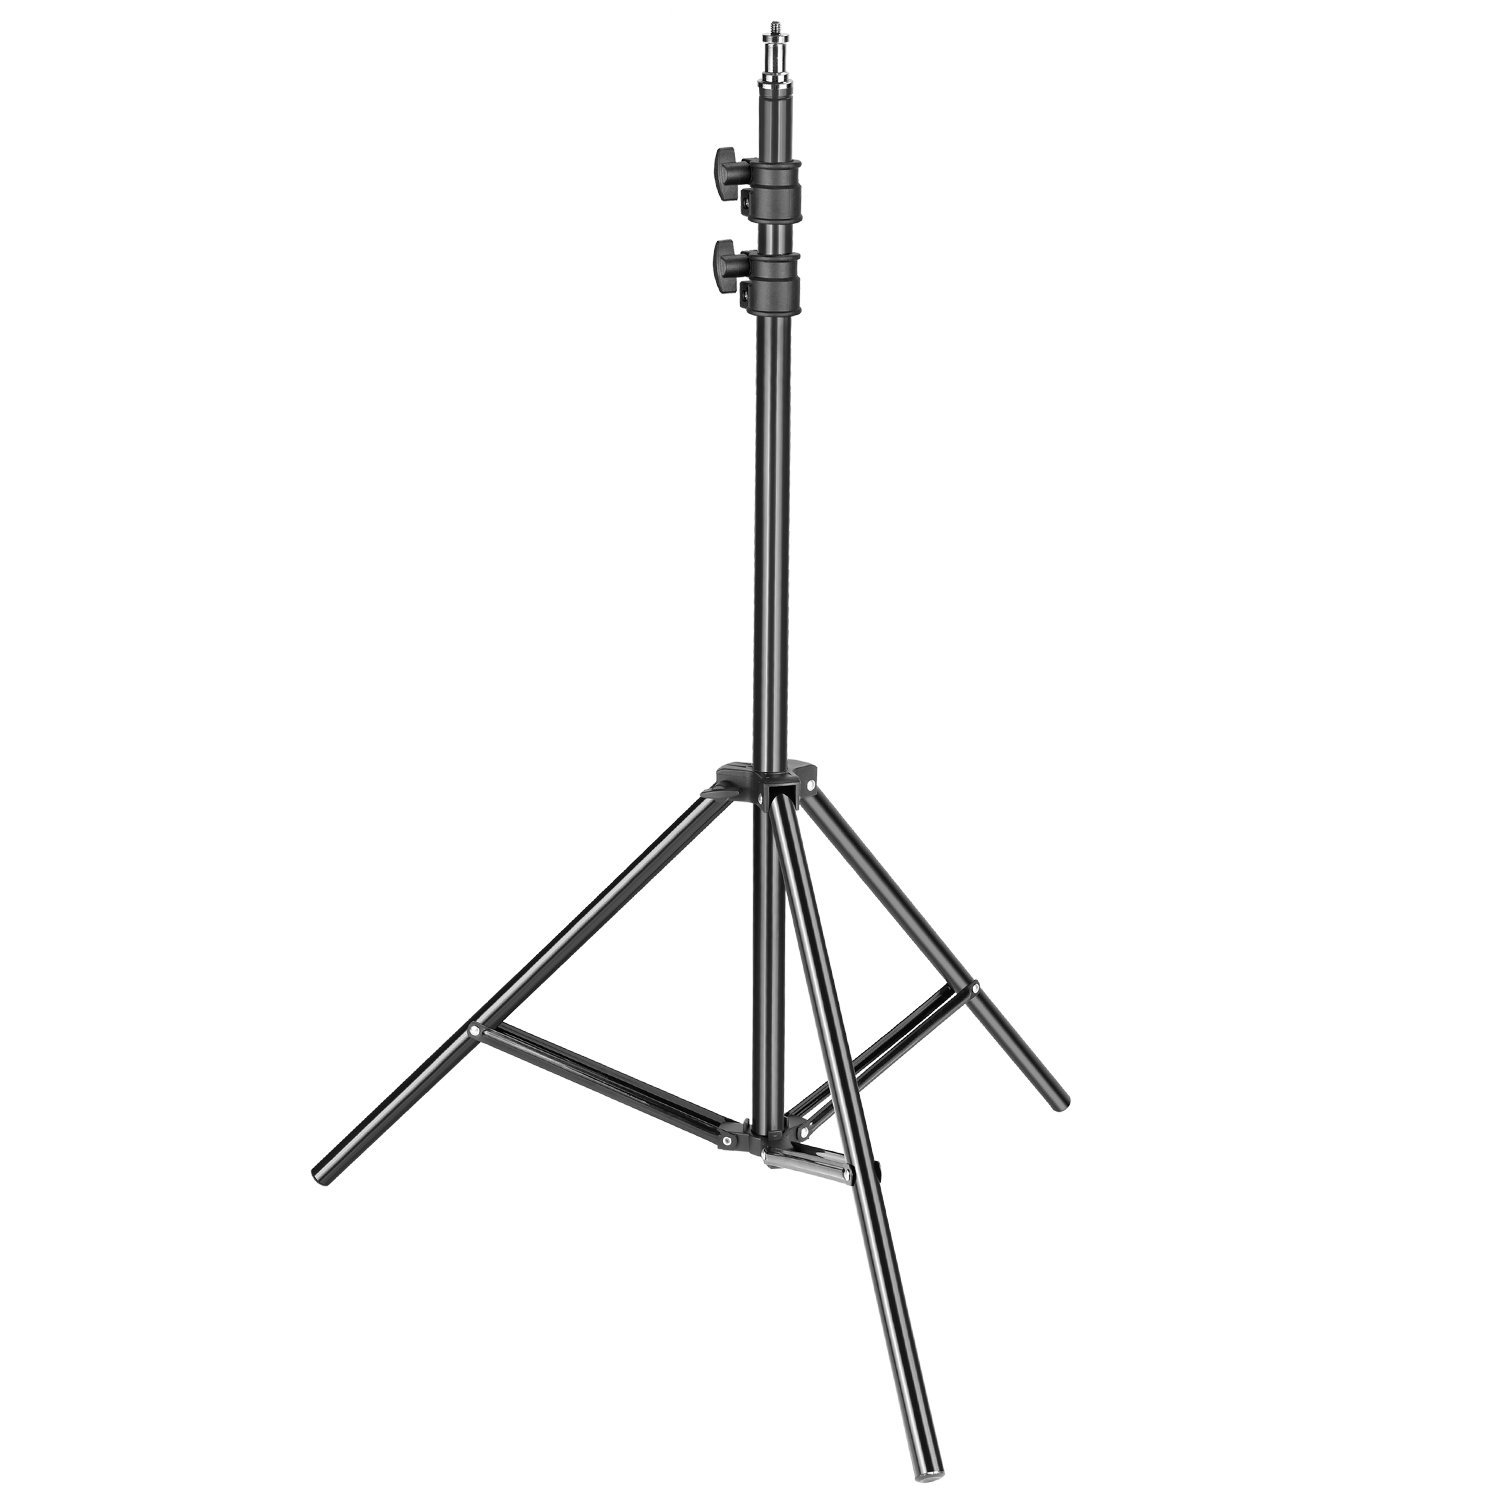 Neewer Heavy Duty Light Stand, 3-6.5 feet/92-200 Centimeters Adjustable Photographic Stand Sturdy Tripod for Reflectors, Softboxes, Lights, Umbrellas with 17.5 pounds/ 8 kilograms Load Capacity 10090346